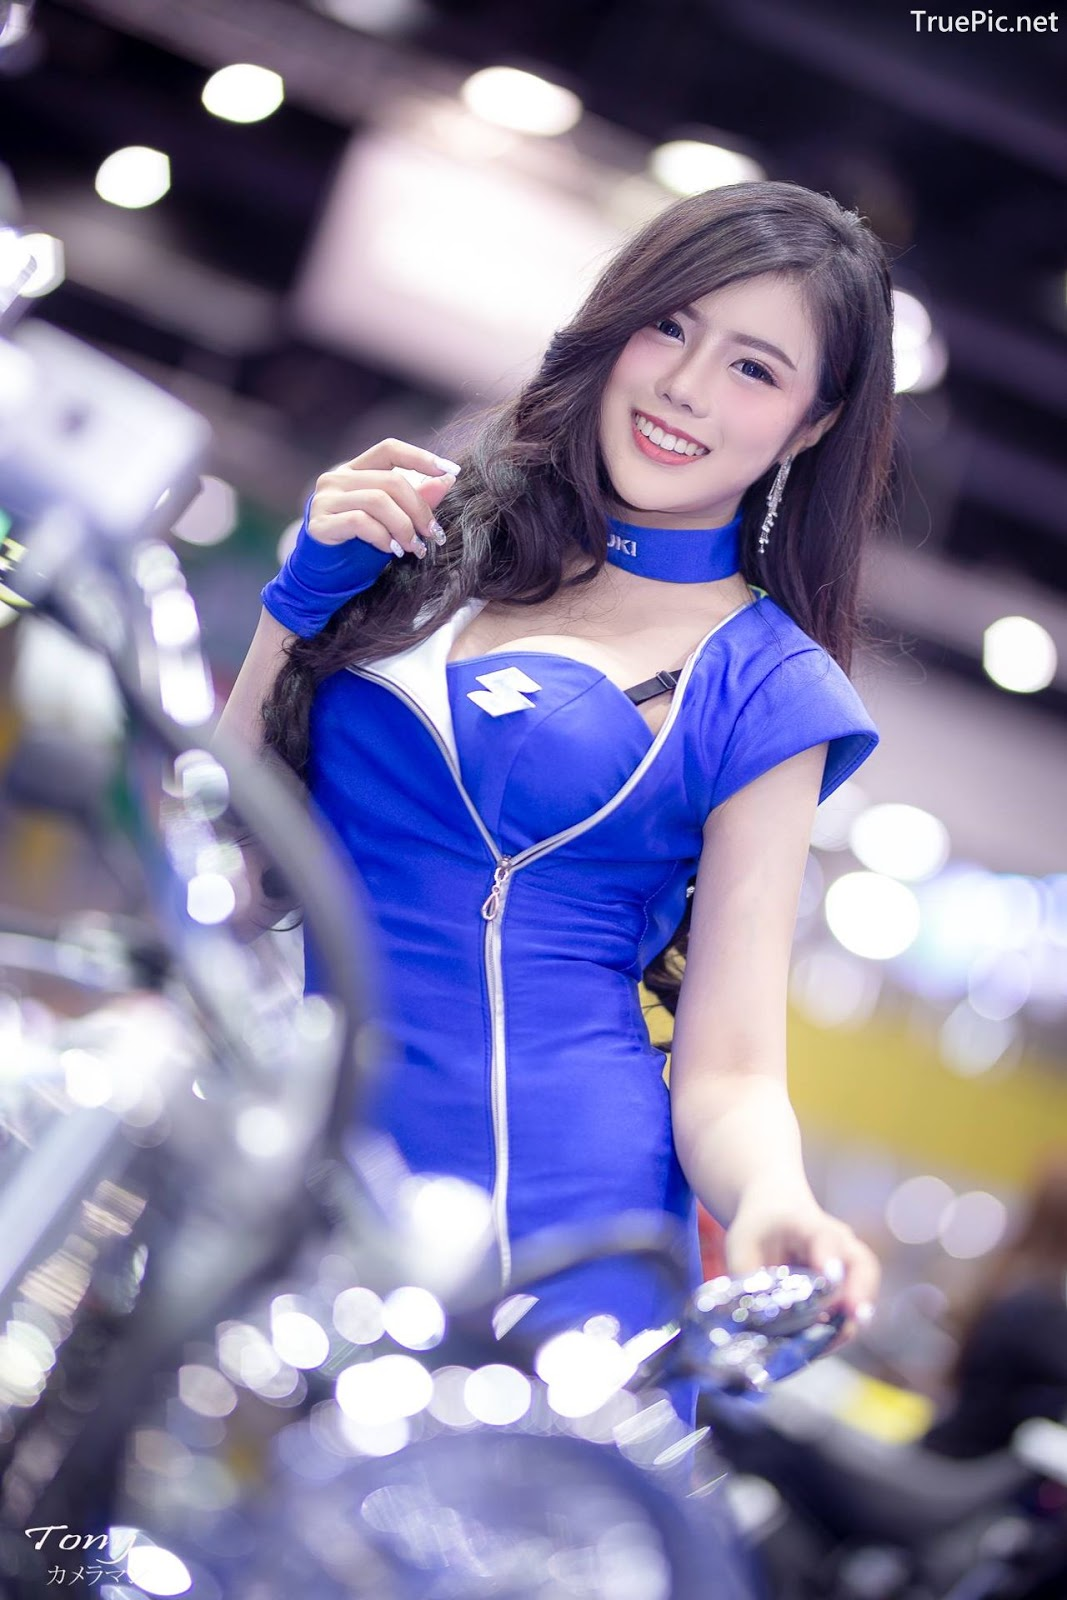 Image-Thailand-Hot-Model-Thai-Racing-Girl-At-Big-Motor-2018-TruePic.net- Picture-6